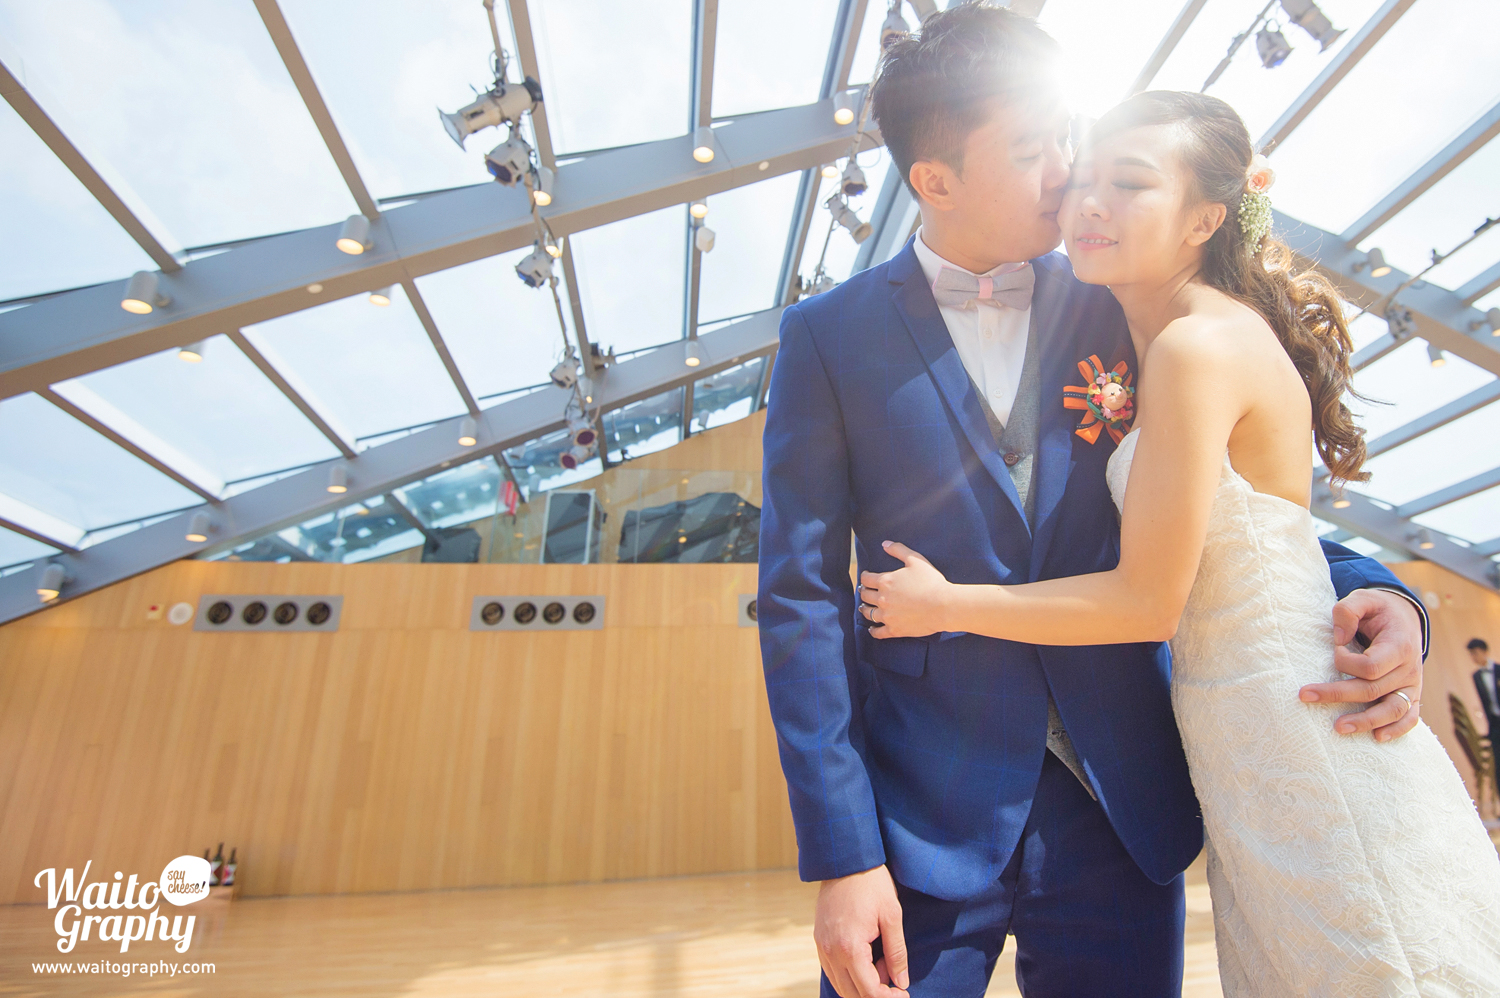 Kissing under the sunshine. This sweet couples just had a wedding at hk bethanie 伯大尼. Photo taken by wedding photographer waitography